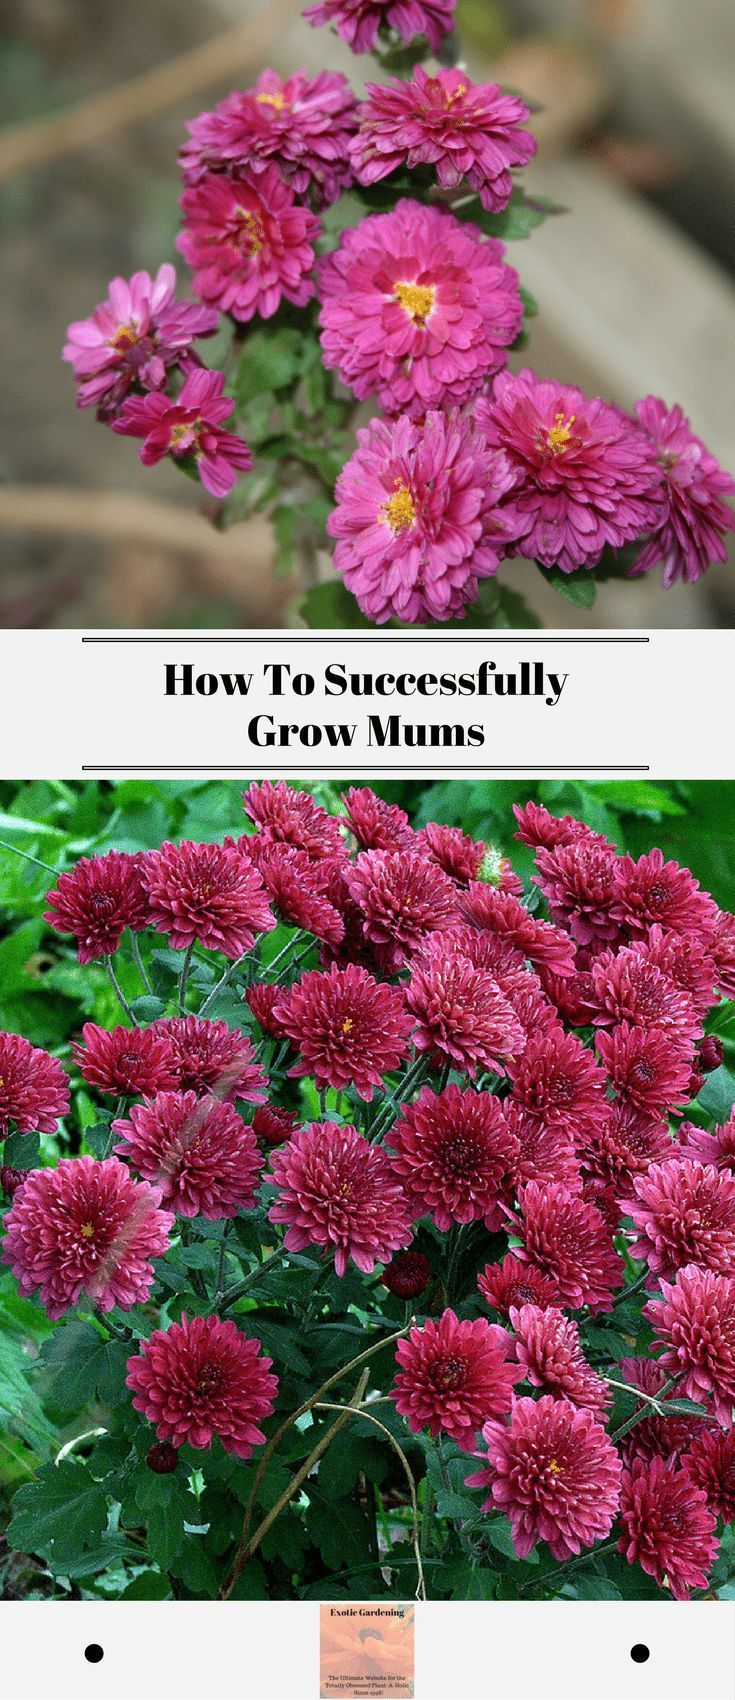 Chrysanthemums Commonly Referred To As Mums Are A Beautiful Fall